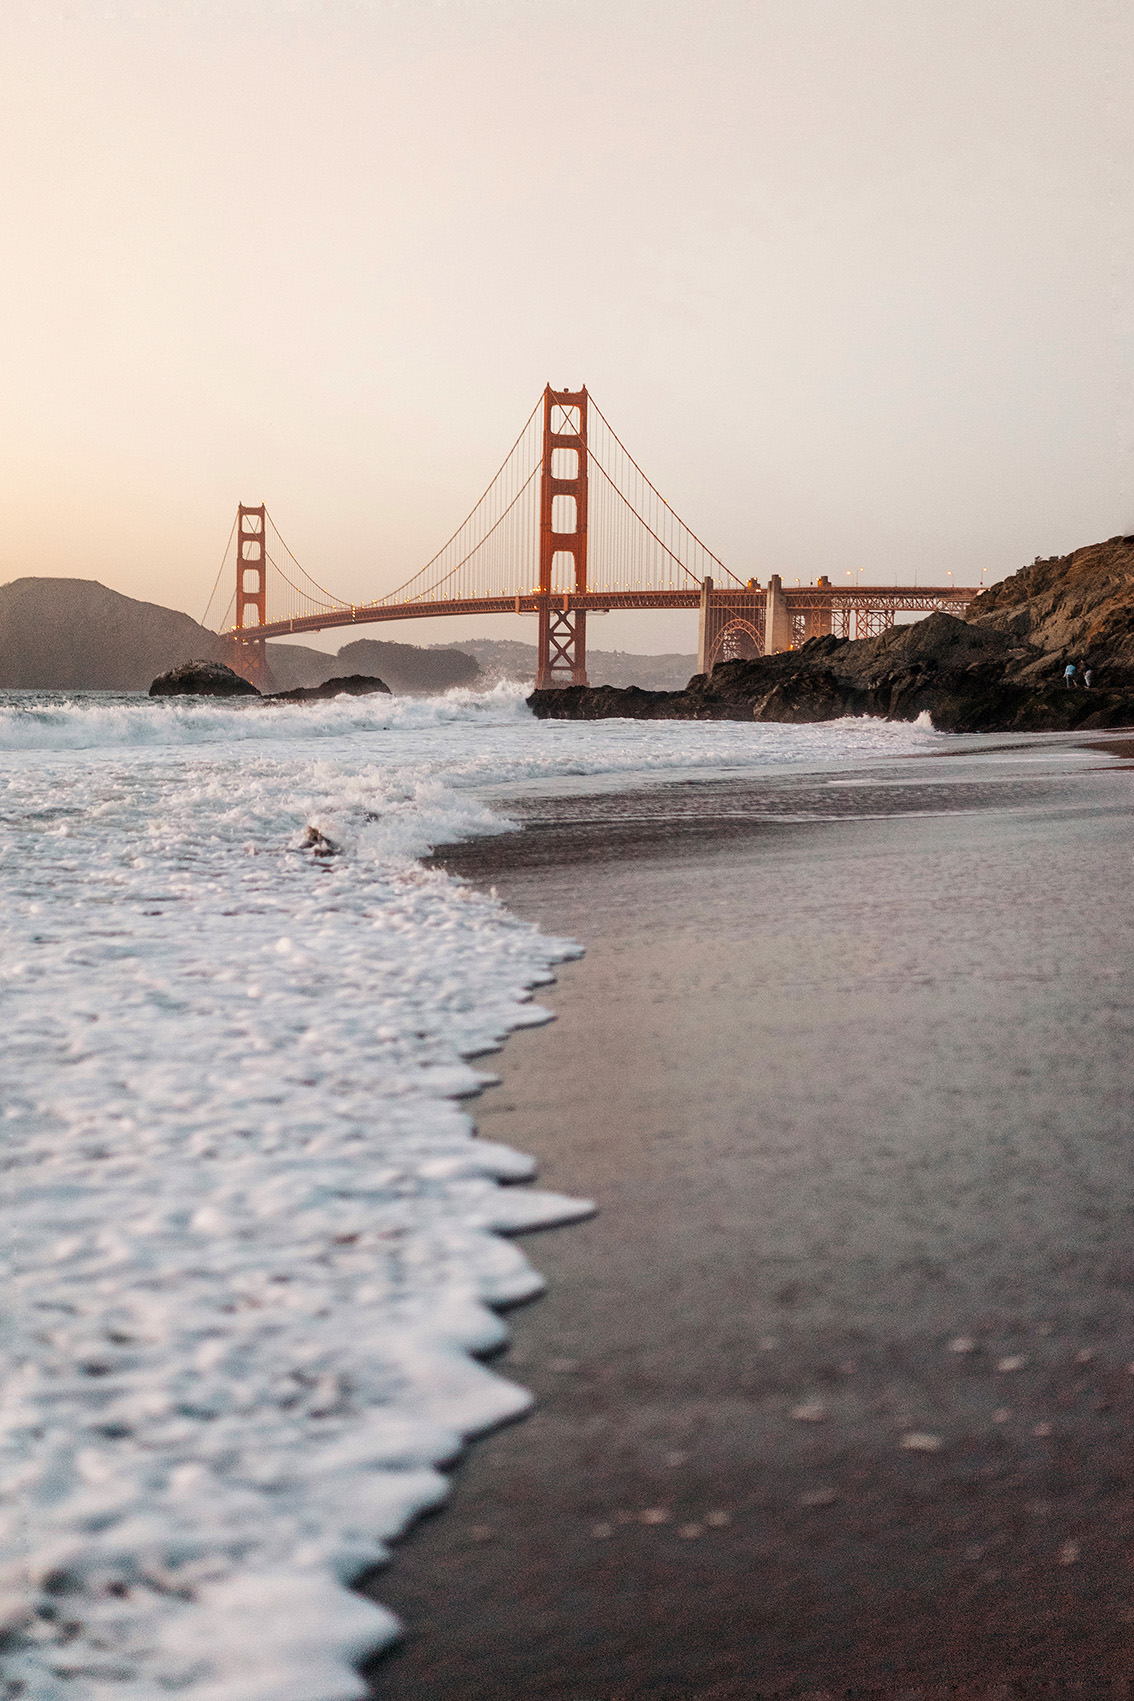 19 10 most instagrammable places in San Francisco you don't have to miss!